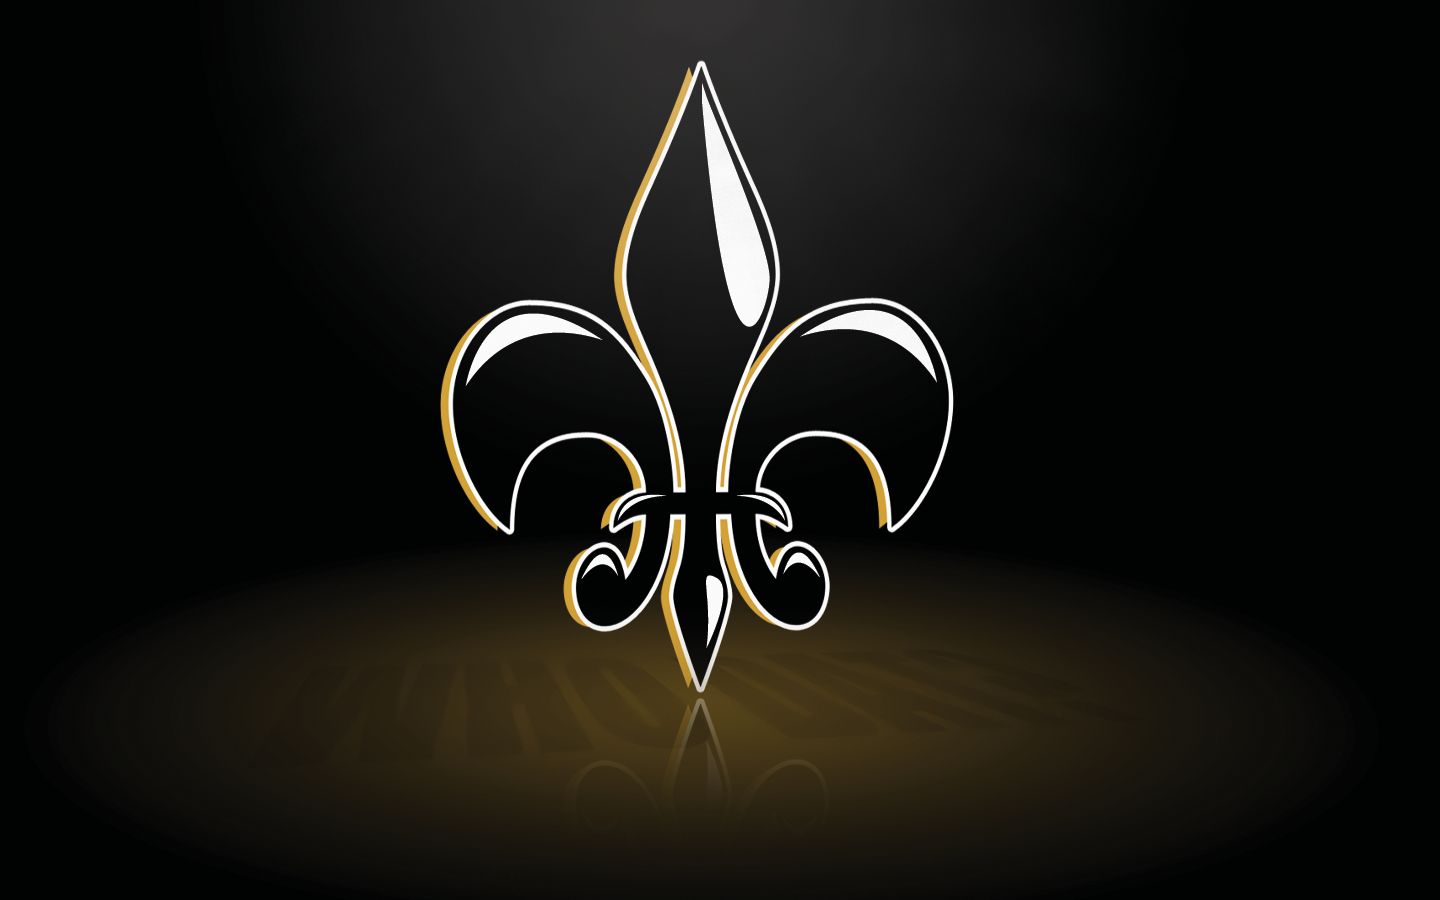 47 New Orleans Saints Hd Wallpaper On Wallpapersafari